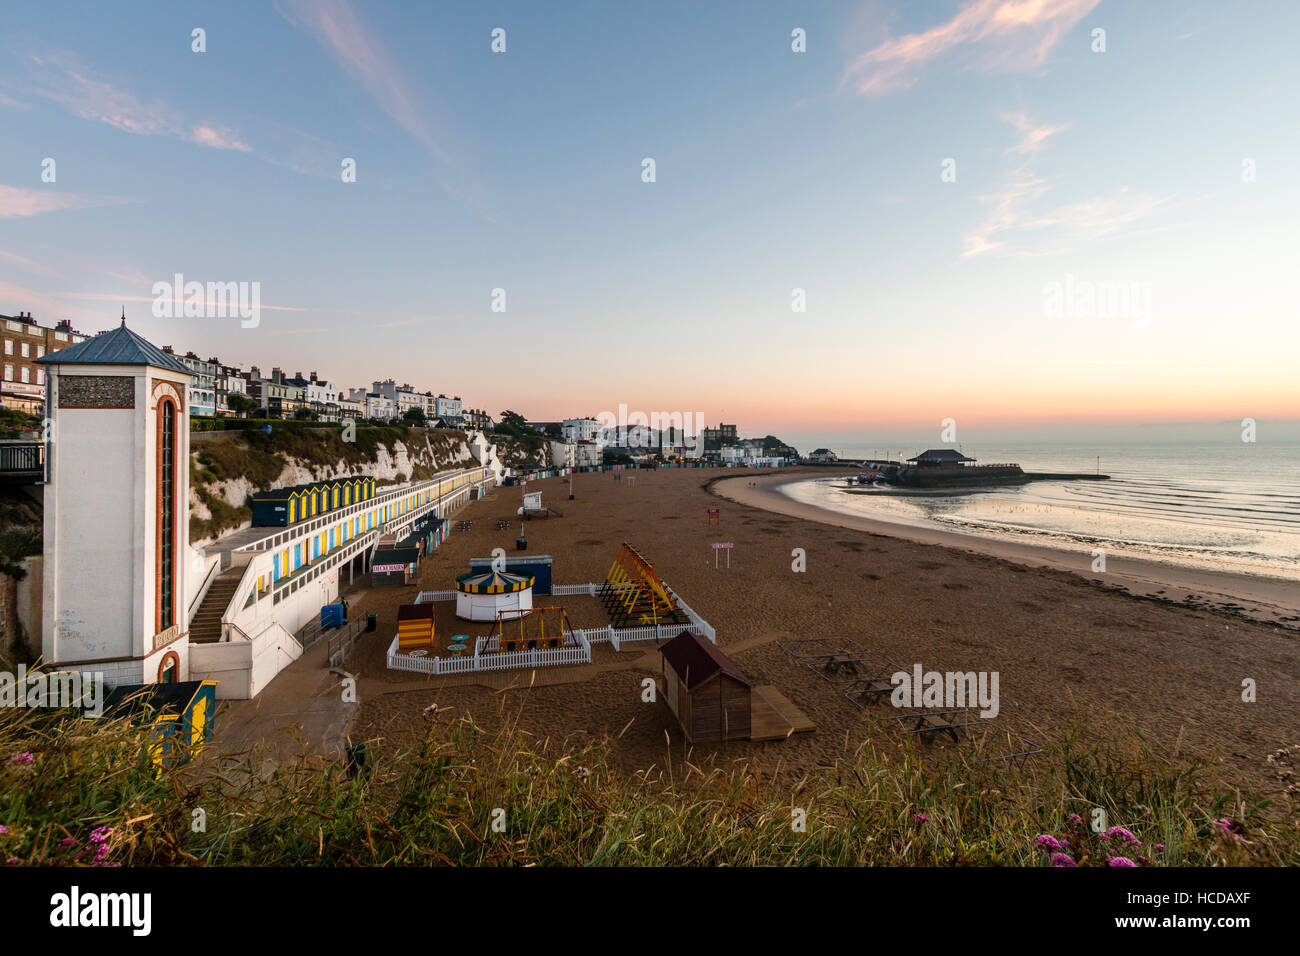 Broadstairs seafront, lift-shaft, cliffs, beach huts and seafront buildings with beach, sea and harbour during the - Stock Image